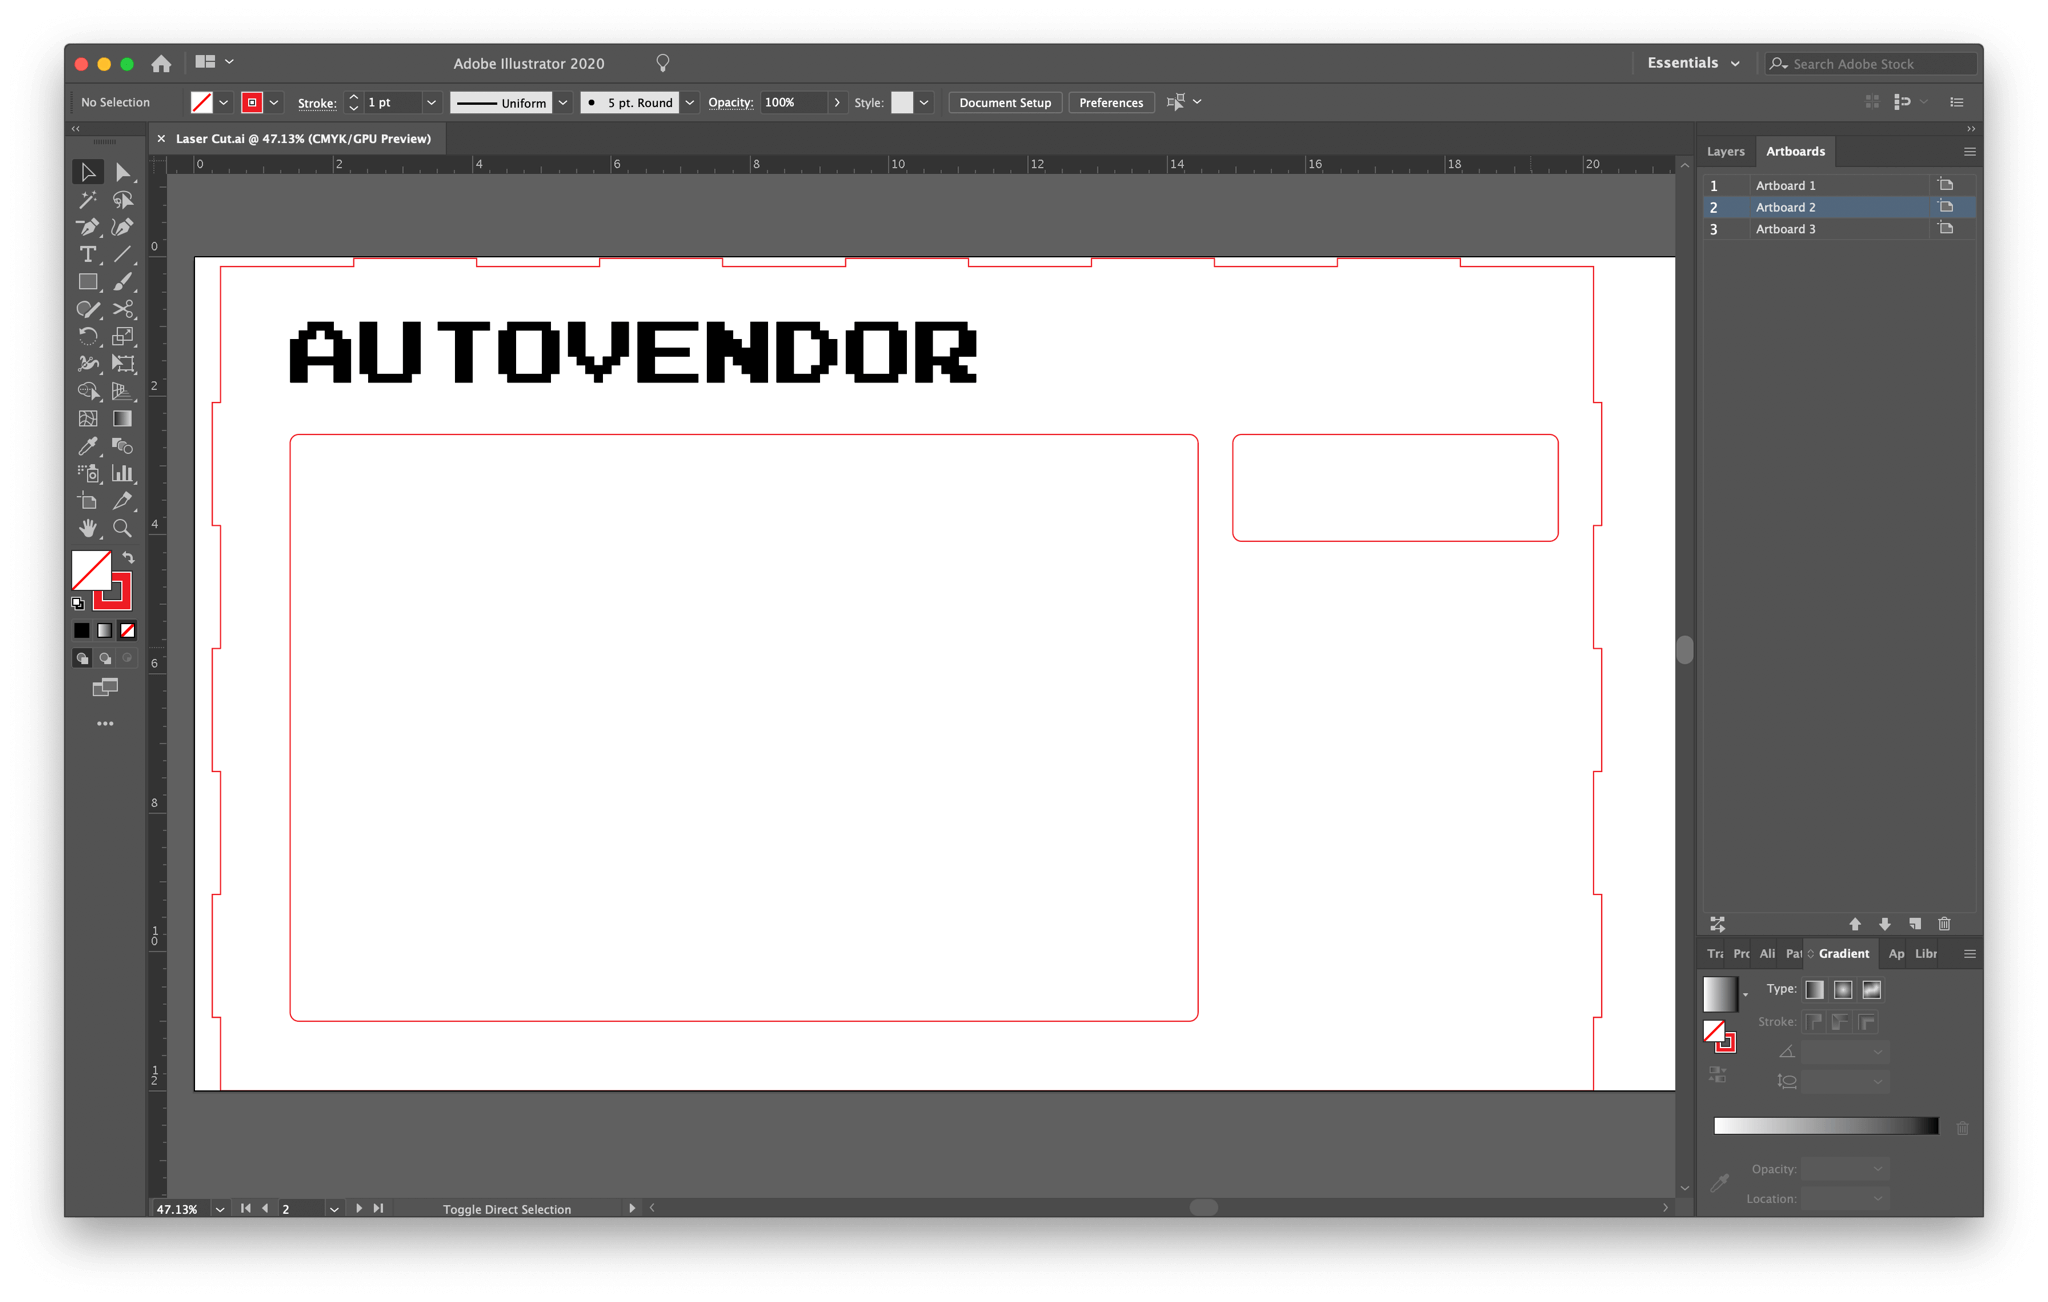 Screenshot of front panel cutting/engraving pattern in Adobe Illustrator